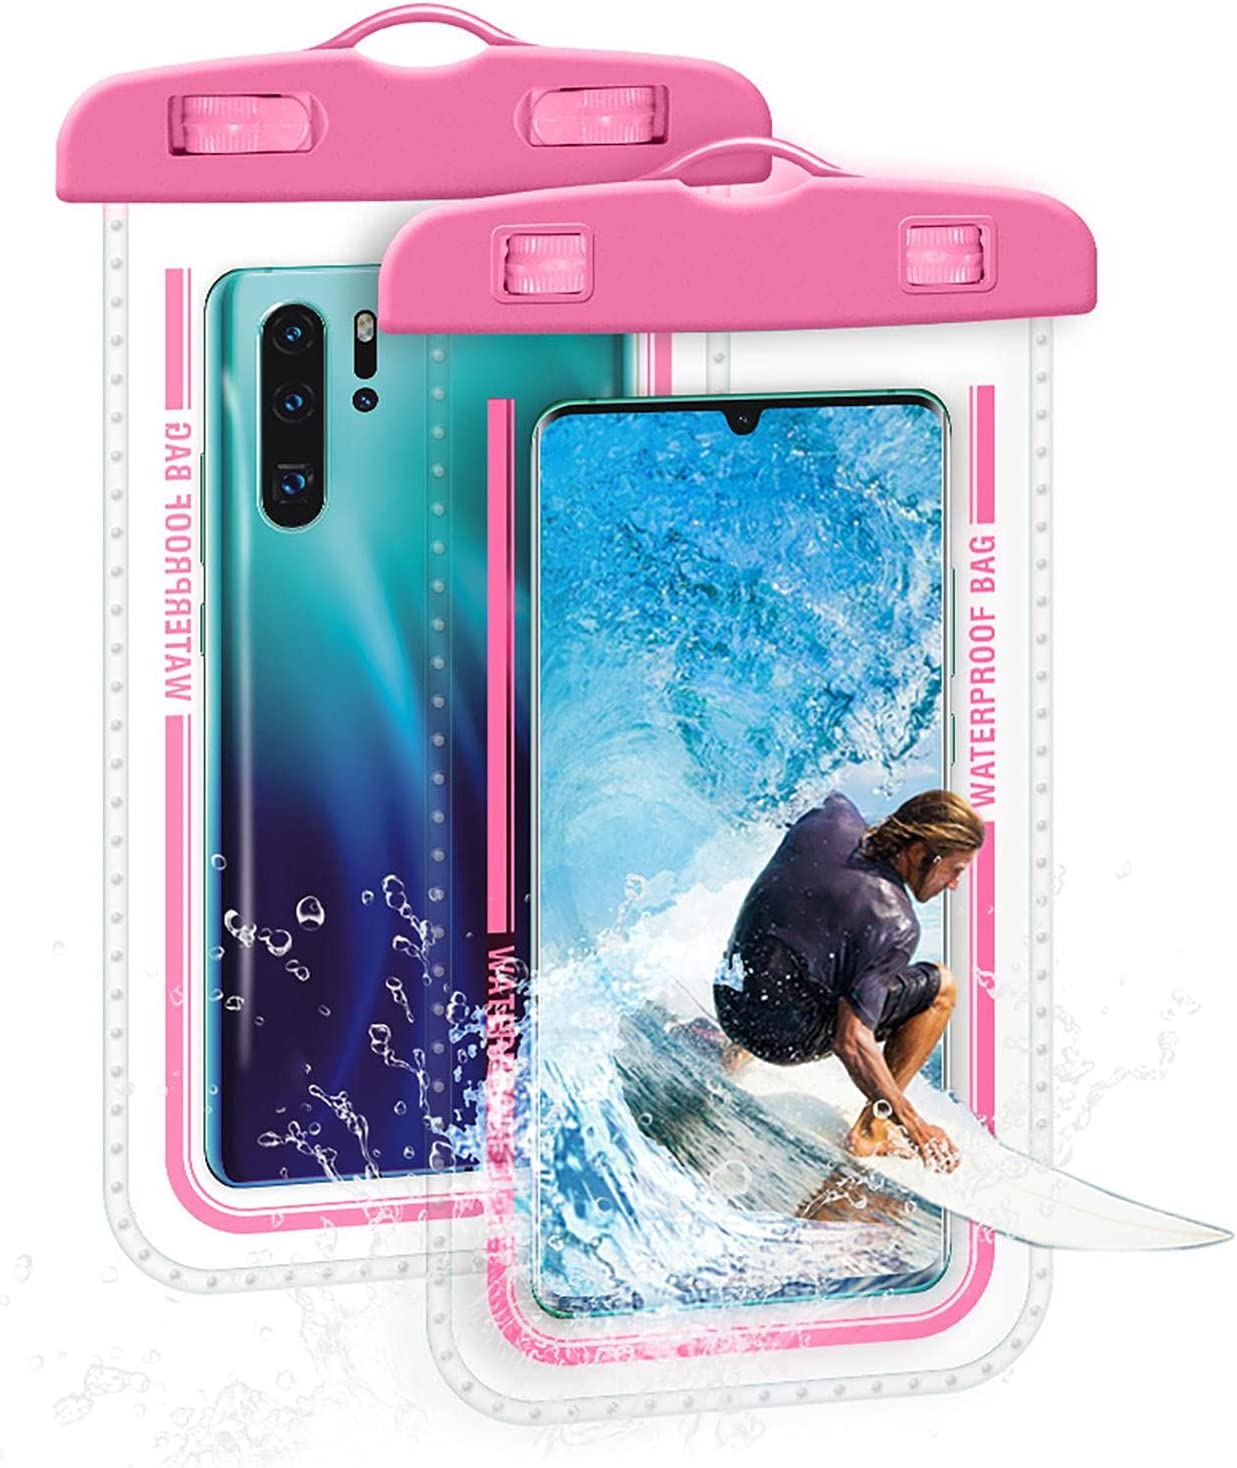 Mona43Henry Universal Waterproof Phone Bag, 7 Inches Waterproof Phone Pouch, Full-Screen Transparent Touch Sensitive Cellphone Dry Bag, Super Tightness Underwater Case Amicable